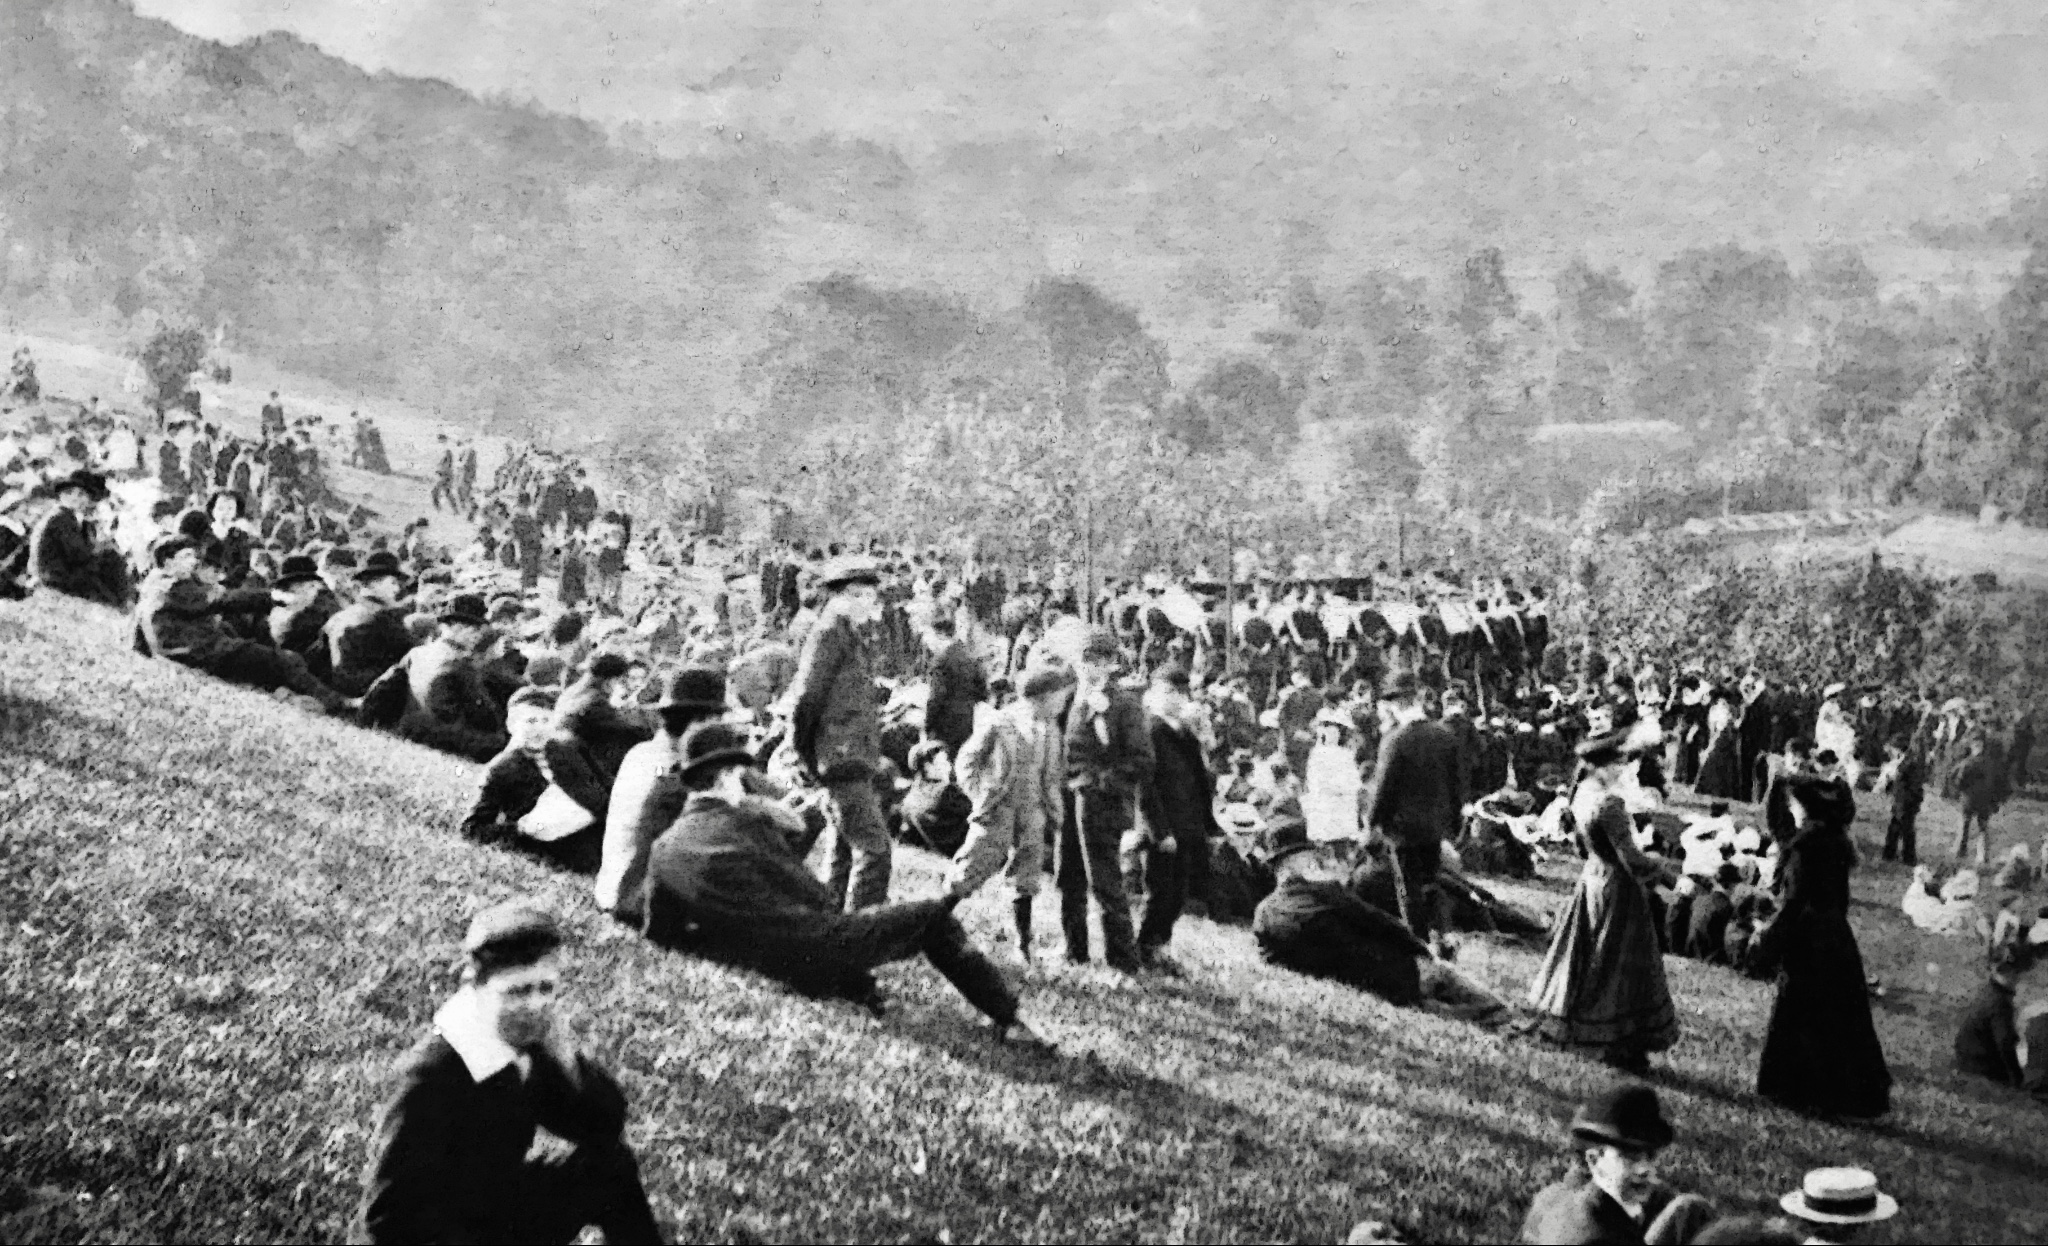 Woodhouse Ridge, with Bandstand and Visitors, early 1900s